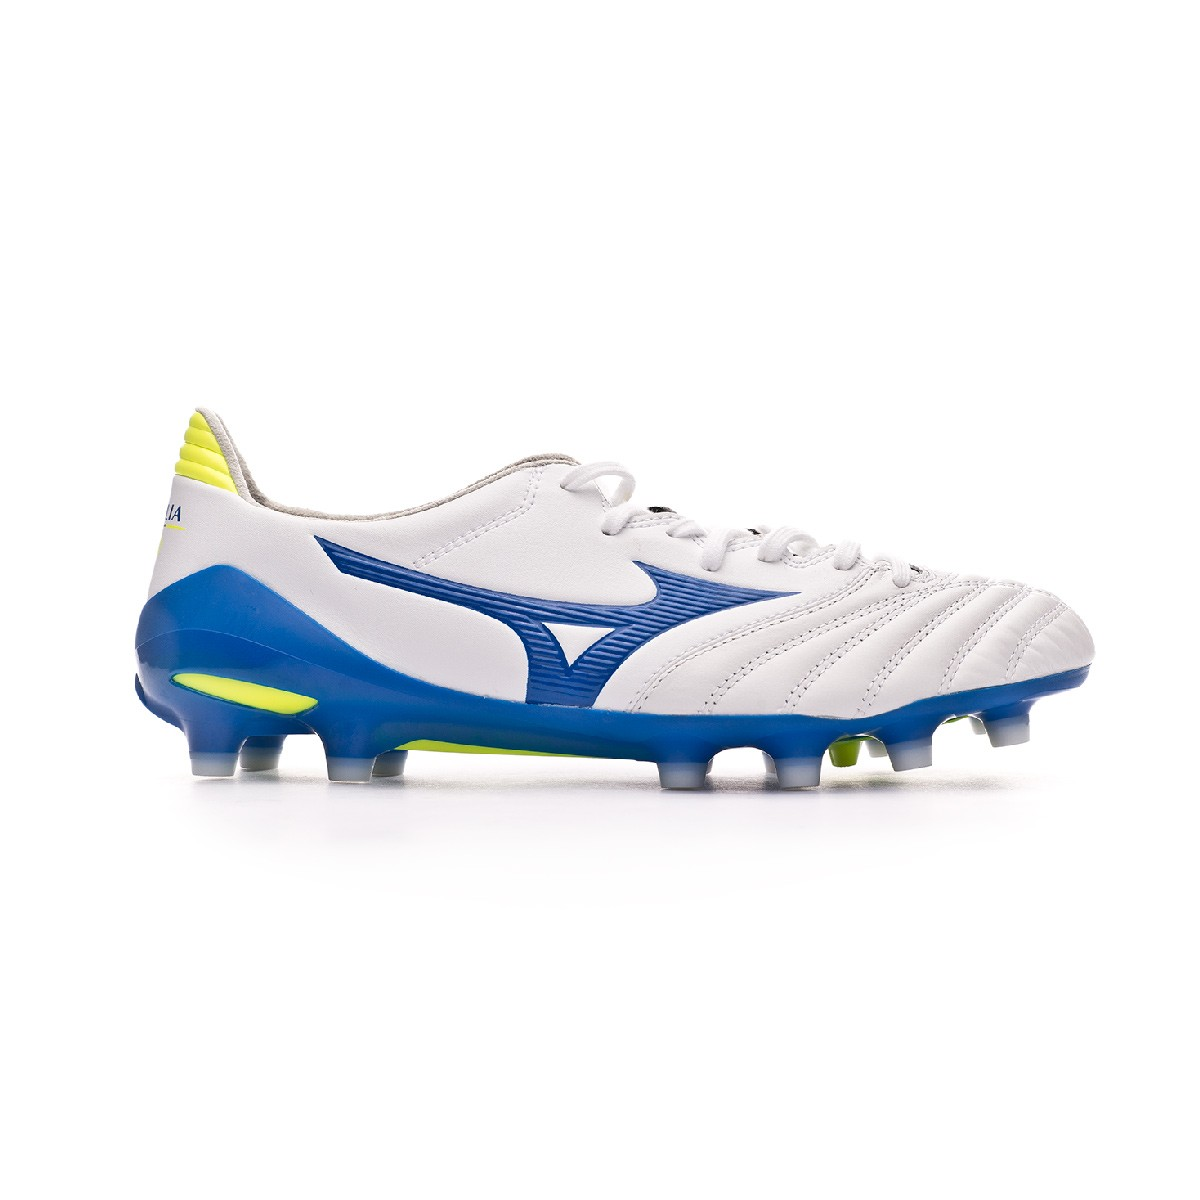 quality design de797 9ec0d Bota Morelia Neo II MD White-Wave cup blue-Safety yellow